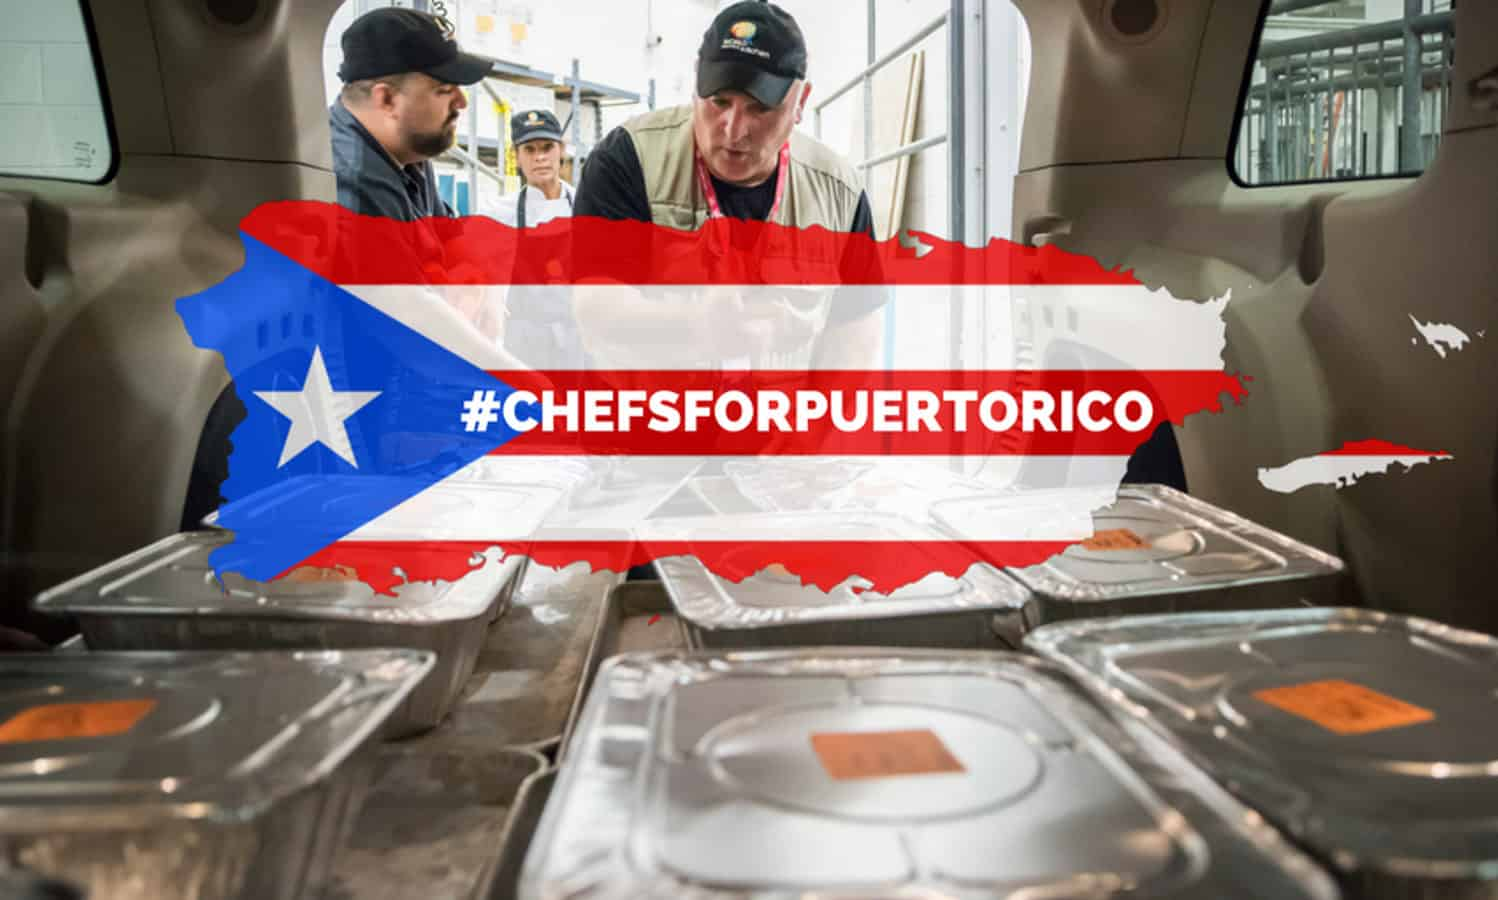 Celebrity chef Jose Andrés is working alongside local Puerto Rican chefs to feed more than 5,000 Puerto Ricans per day in the wake of Hurricane Maria.